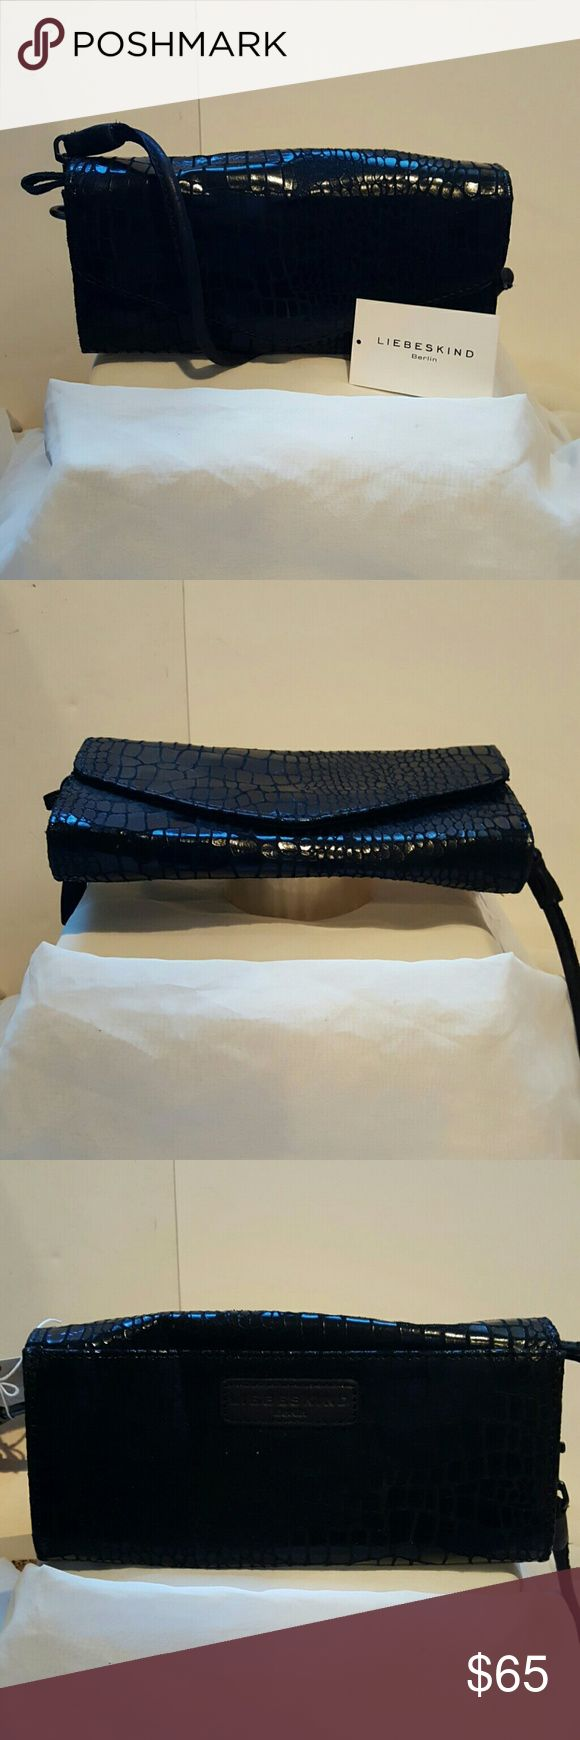 Liebeskind Black Doro Clutch Soft lather, outside pocket and removable strap turns it into a clutch or crossbody. Snap closure, 3 seperate interior sections and one zippered large pocket. 10x1x5 Liebeskind Bags Clutches & Wristlets